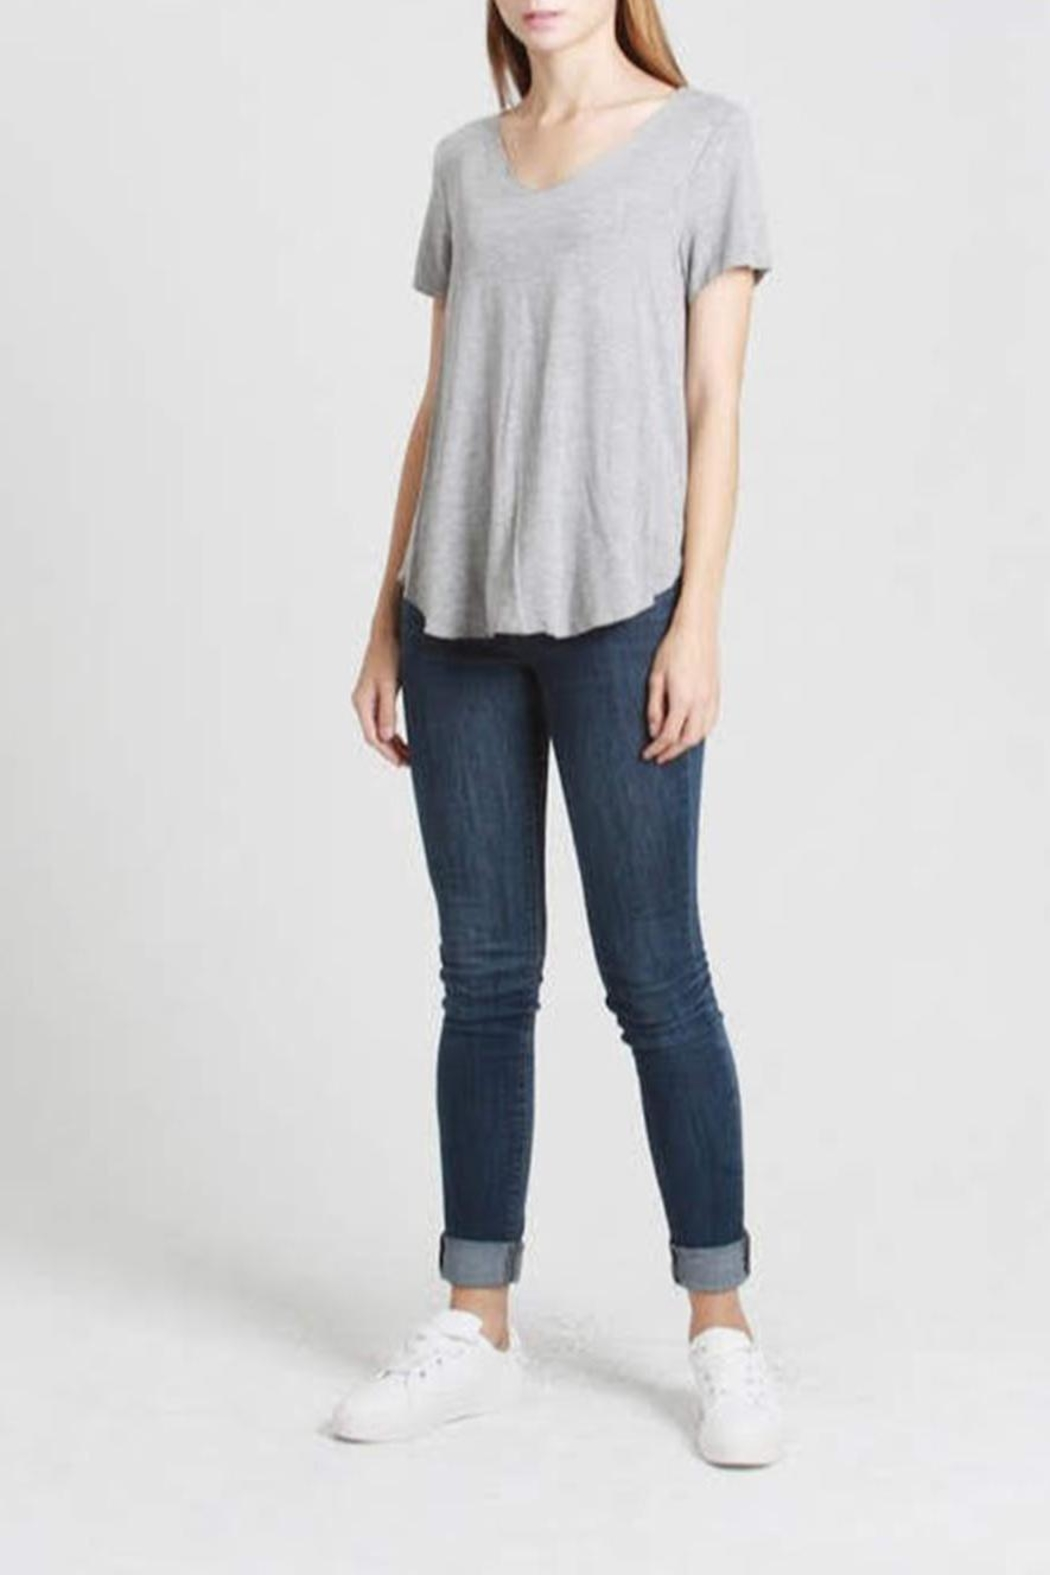 Mod Ref Everyday Grey Tee - Front Cropped Image